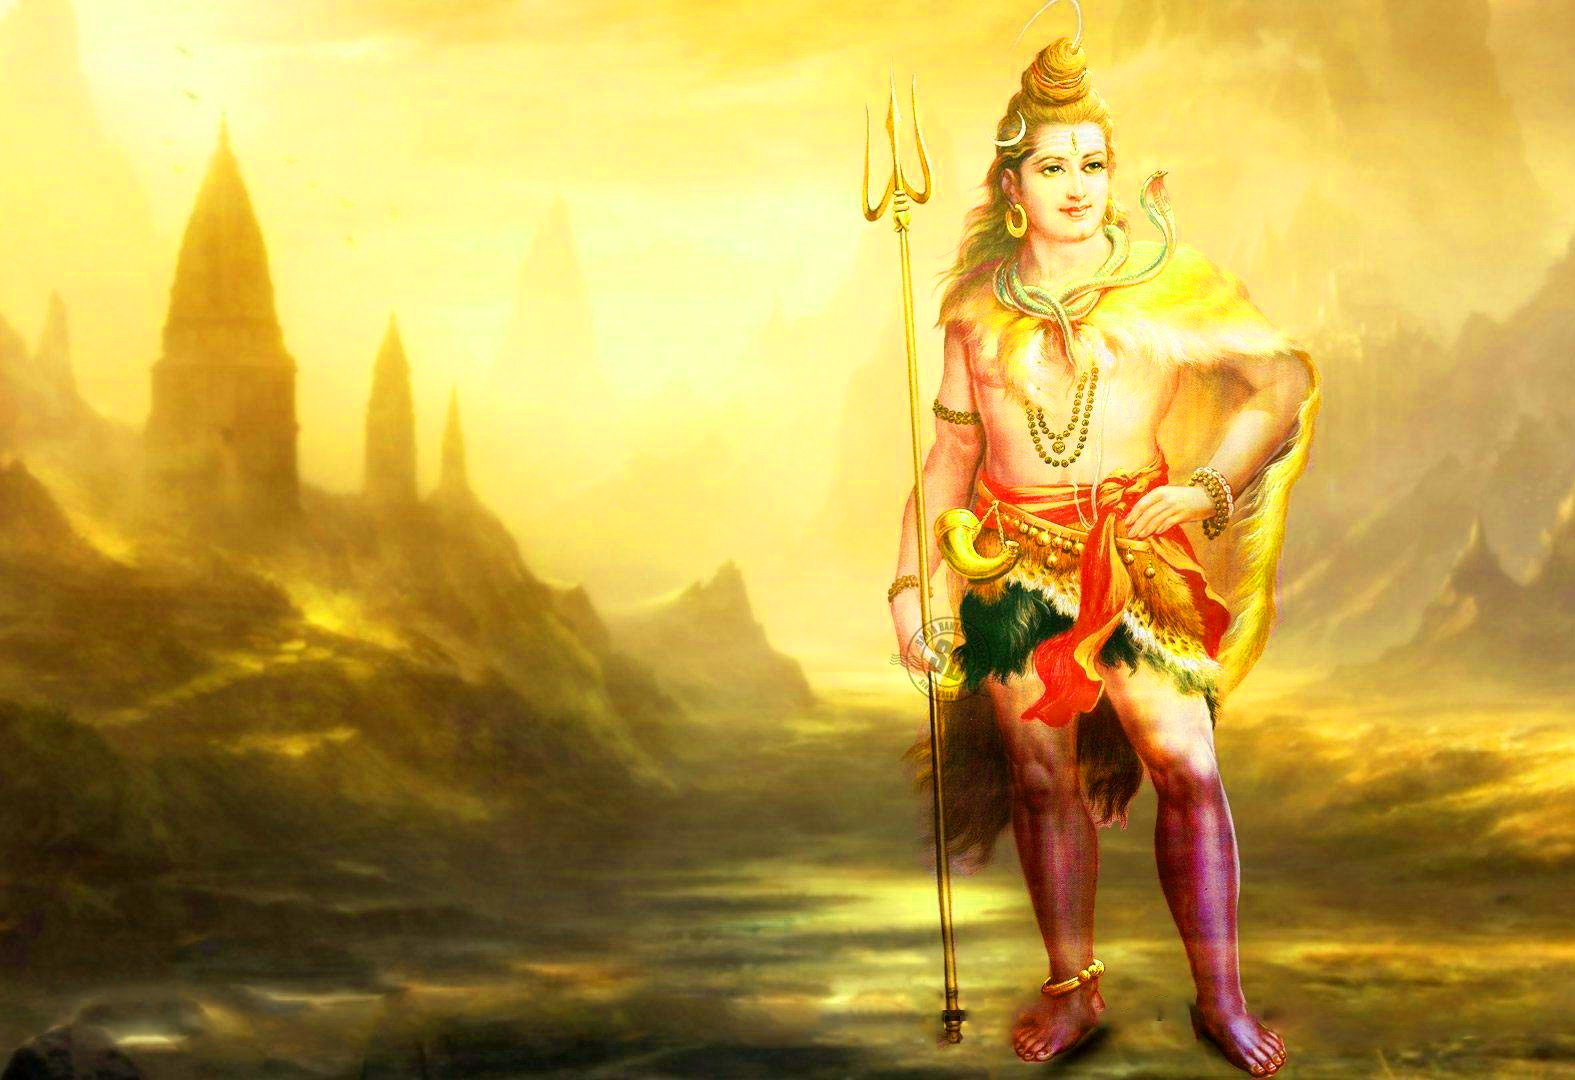 Lord Shiva Images Pictures for Whatsapp